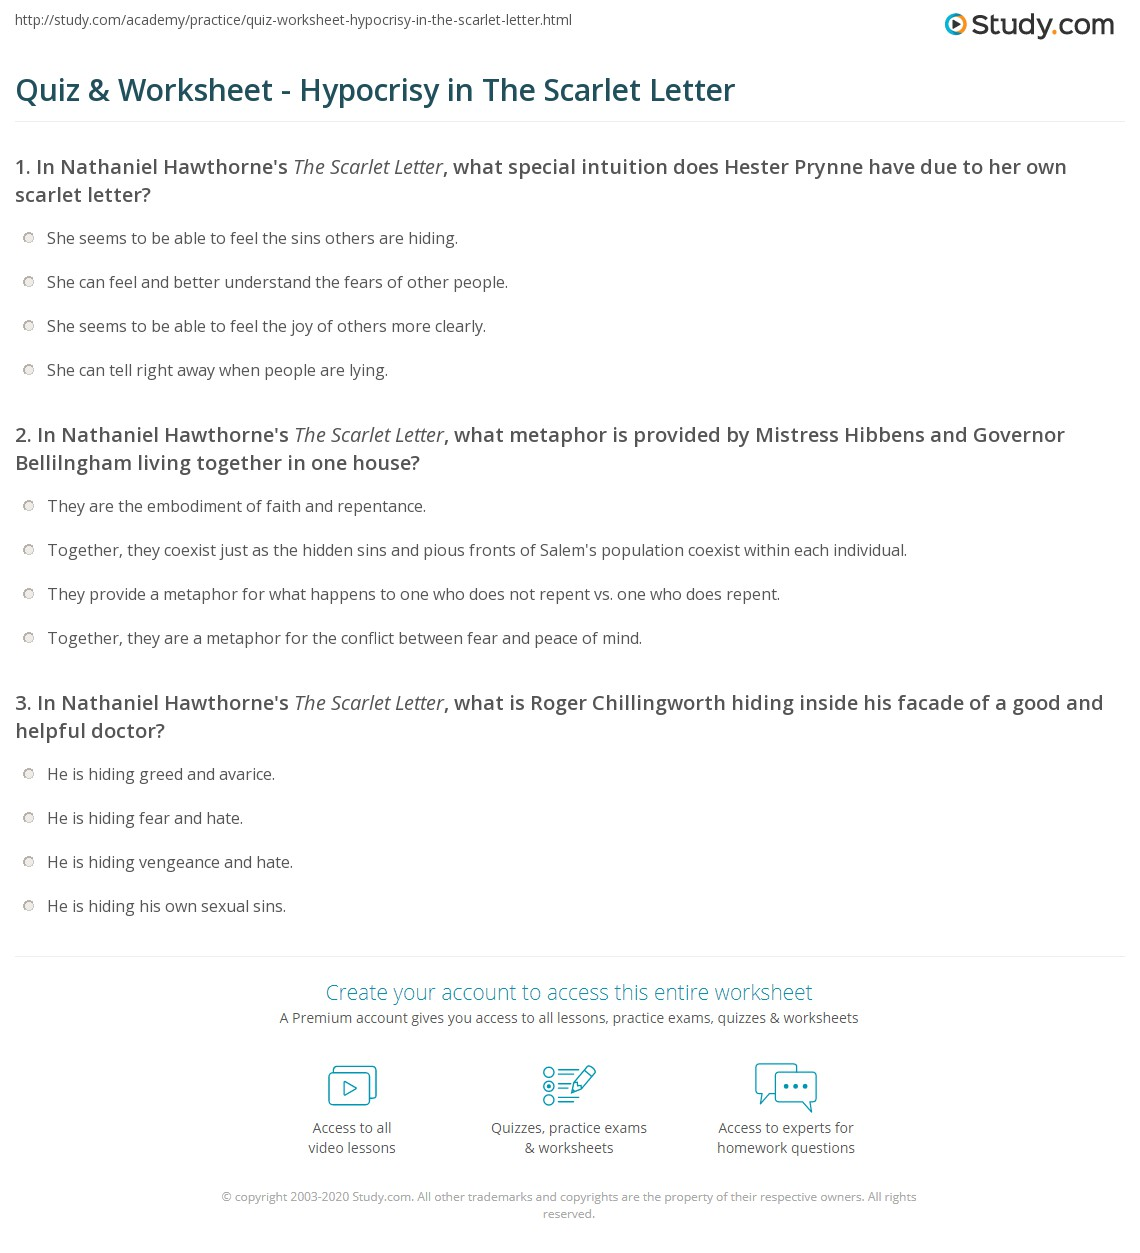 hypocrisy in the scarlet letter informatin for letter quiz worksheet hypocrisy in the scarlet letter study com